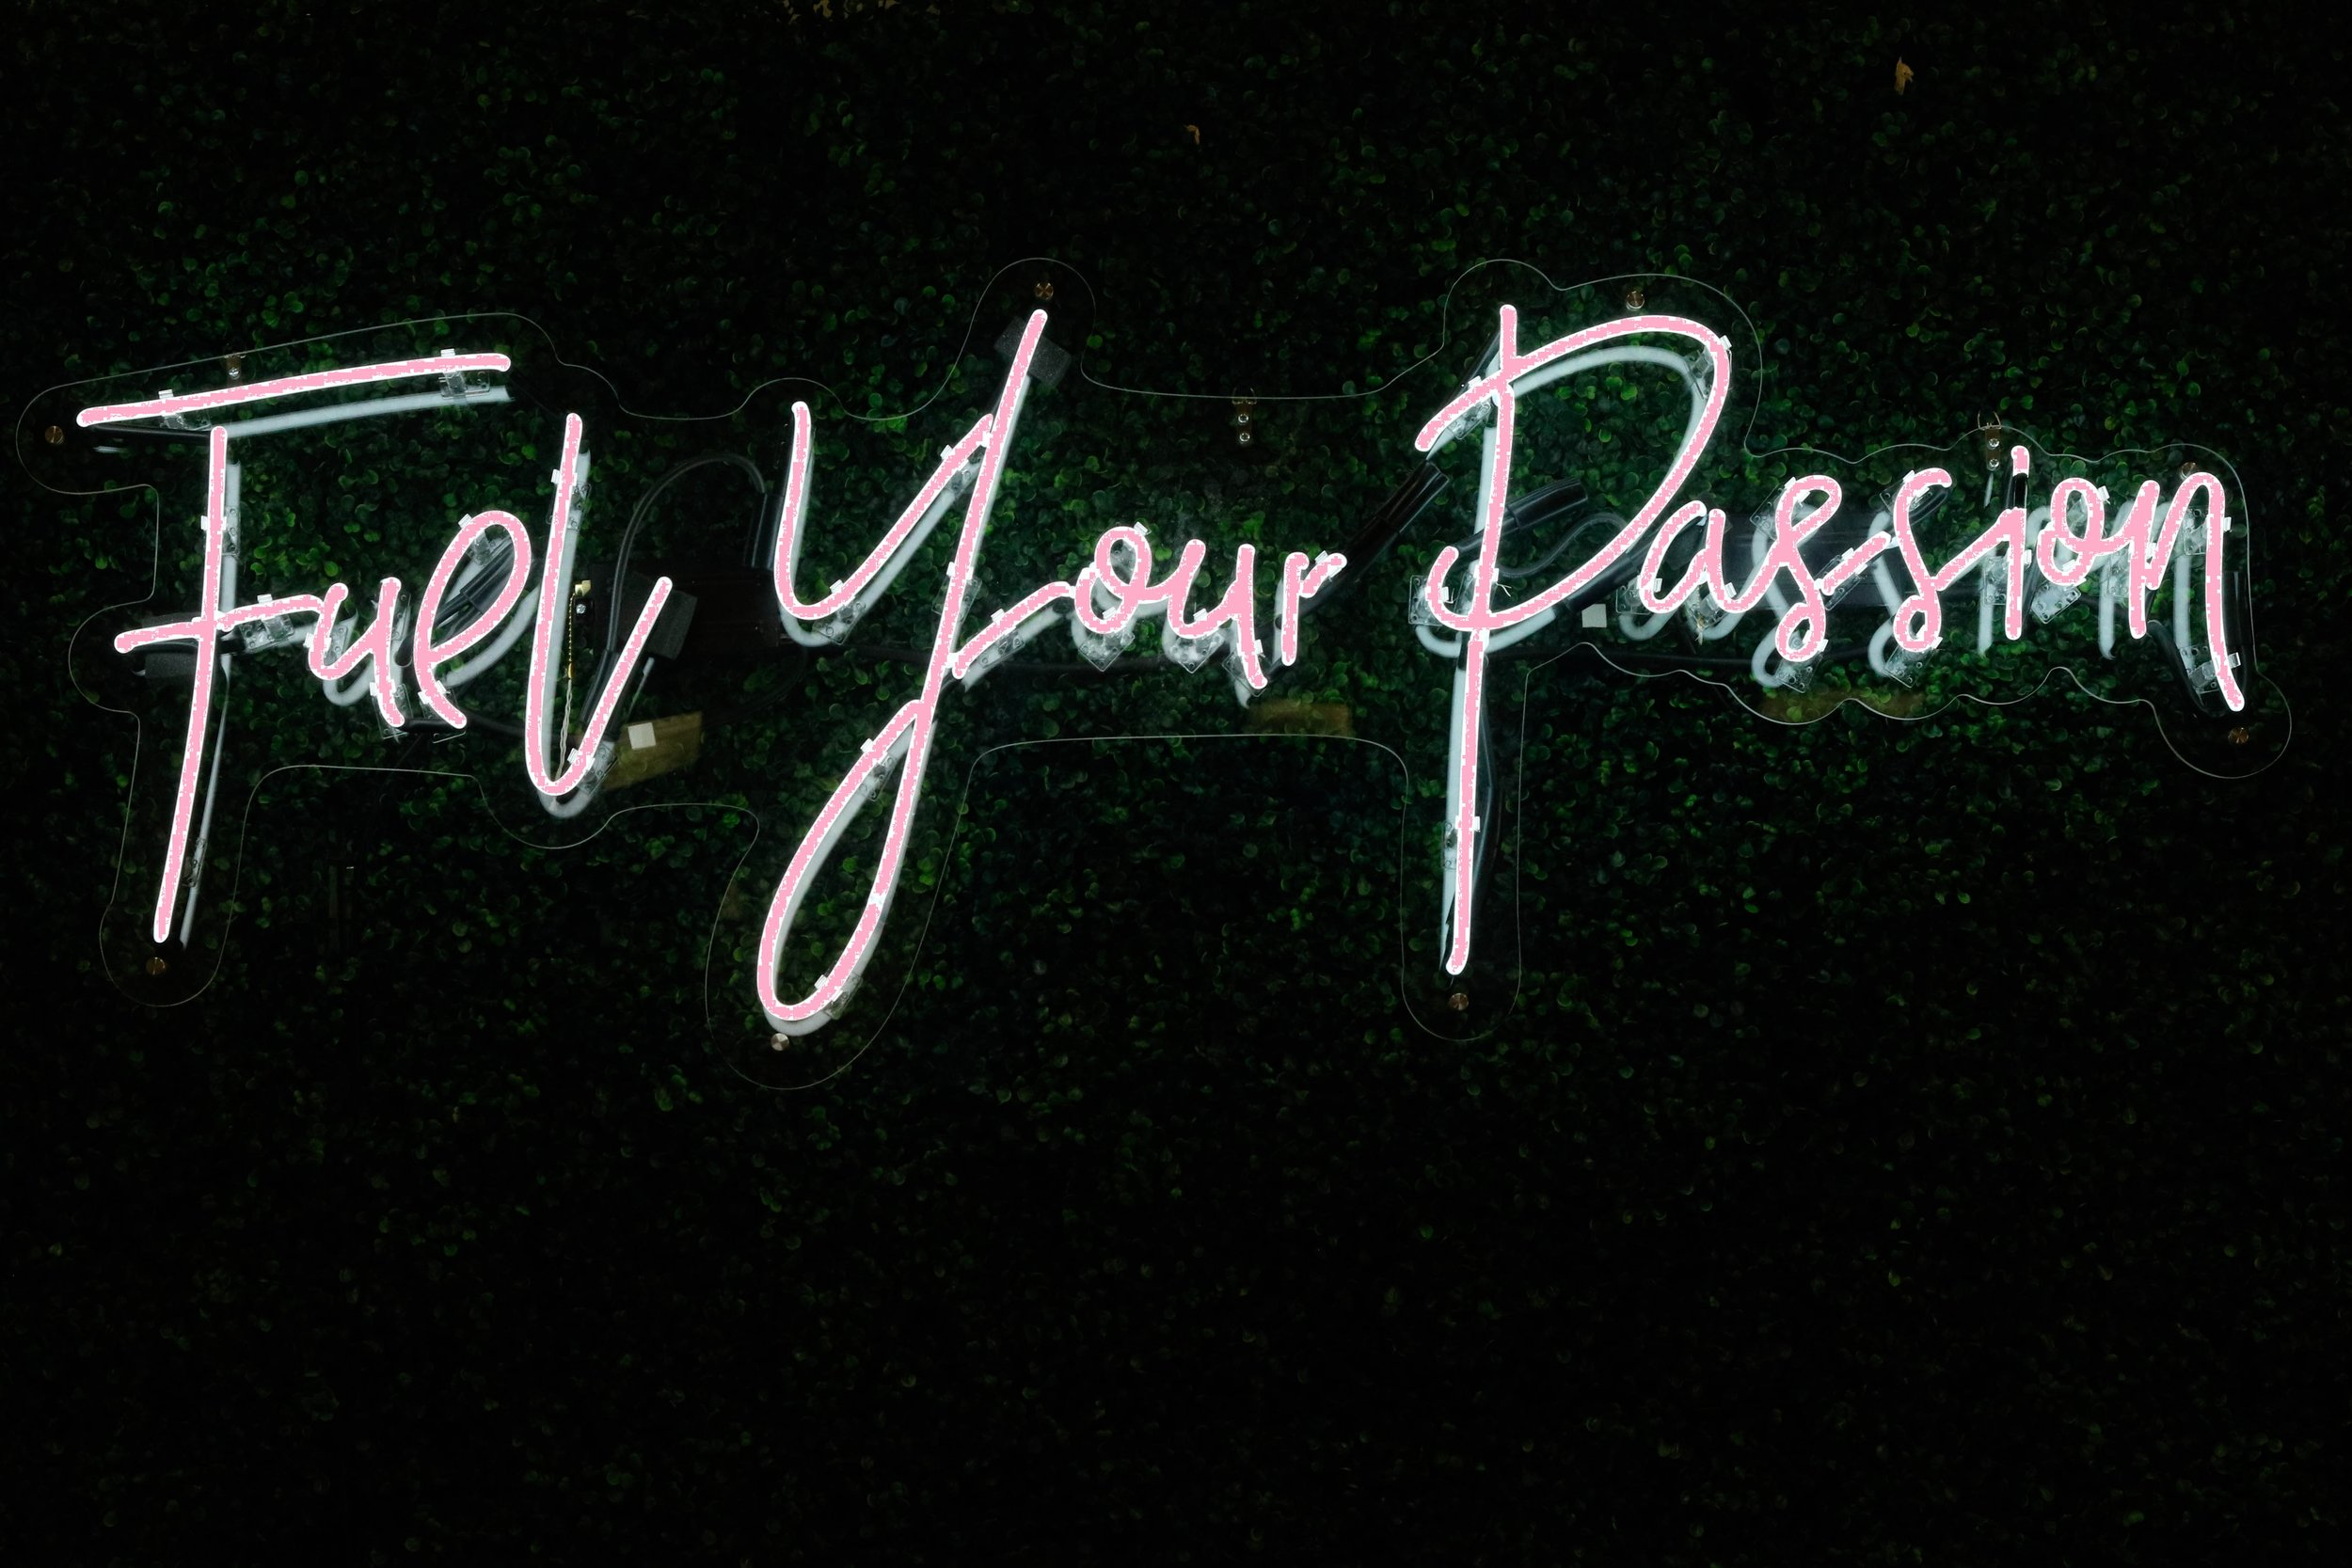 Don't Settle - Did you know that roughly only 31% percent of people actually have jobs related to their degrees? So many graduates are eager to just get a job, get off the broke train, and start earning cash. Our advice to you new graduates - FIND YOUR PASSION! Sit down and really think about what you love doing, what you hate doing and identify jobs that fit in the 'love' category. Pursue a job you would actually love rather than chasing a paycheck. For some that might be a job you got your degree in but for many that isn't the case. I know it seems like you need to get a job ASAP - but you really don't. Don't feel like you have a passion? Don't worry you do, you maybe just haven't put as much thought into it or maybe you don't think it's possible. We are here to tell you it is.- Jamie